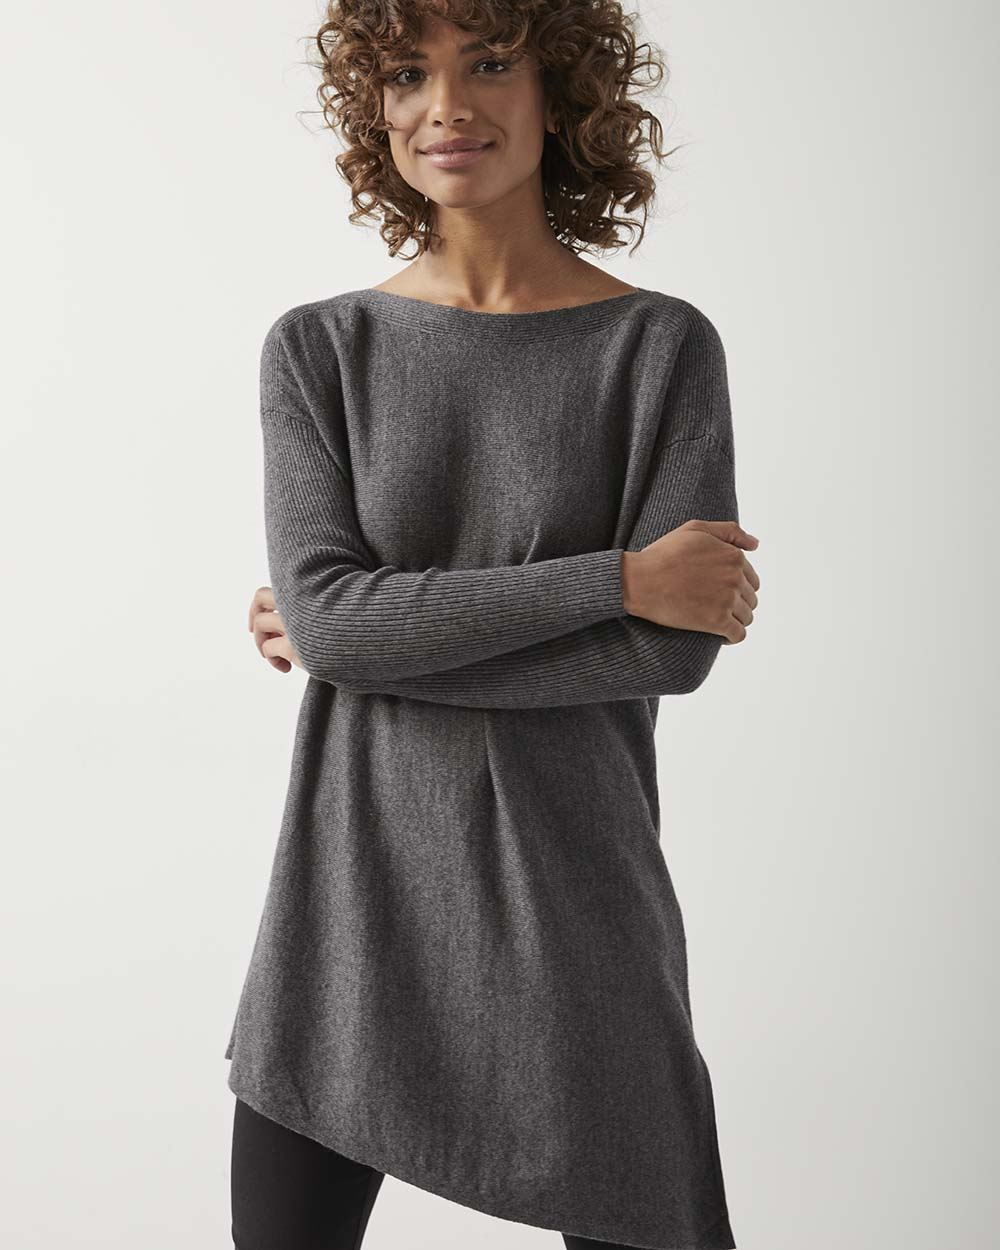 C&G Asymmetrical tunic sweater